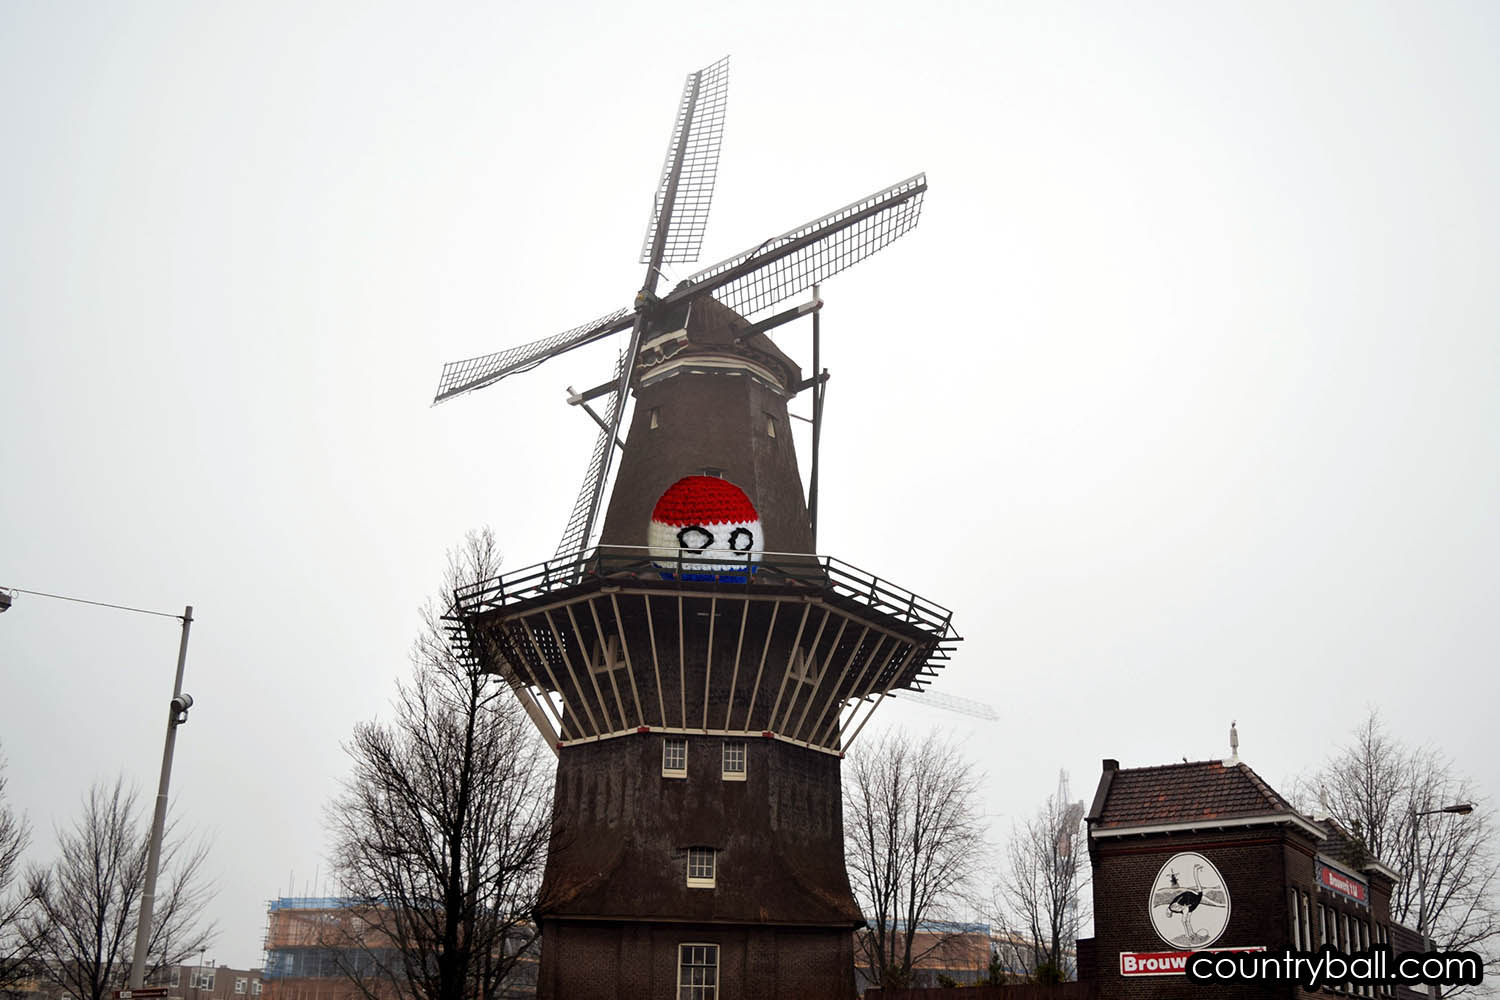 A Windmill with Netherlandsball